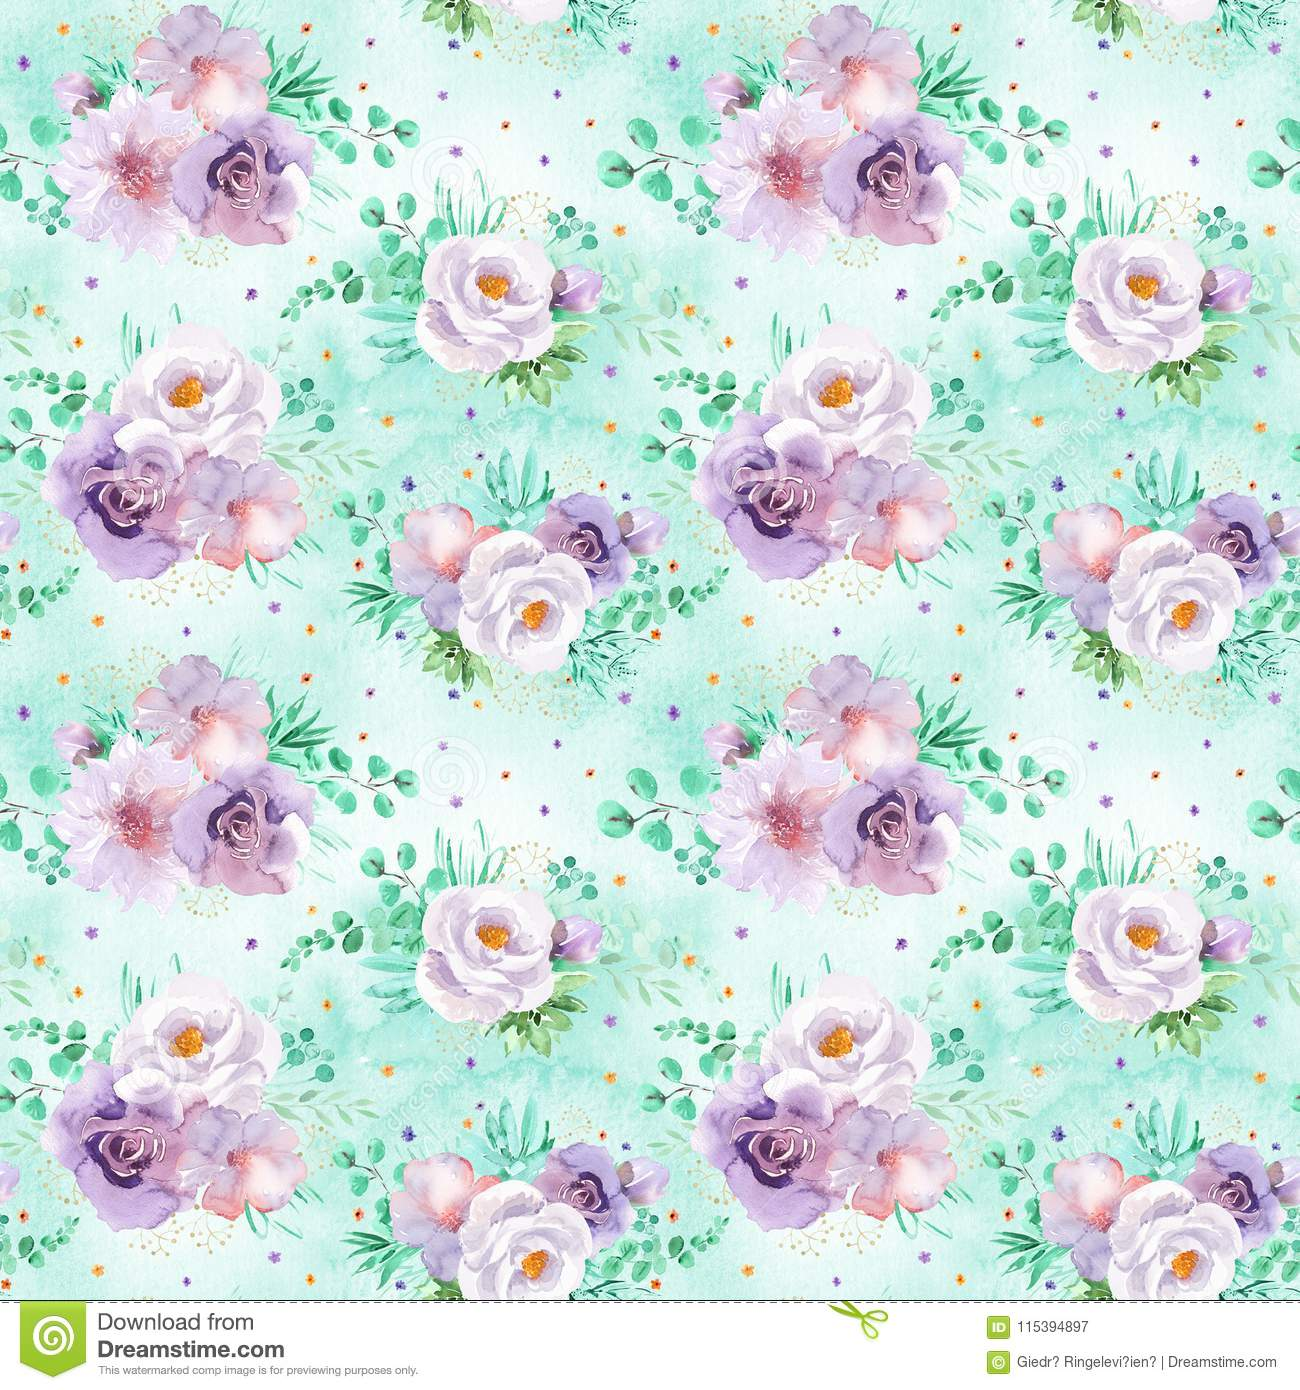 Seamless Watercolor Floral Pattern In Mint Green And Light Purple